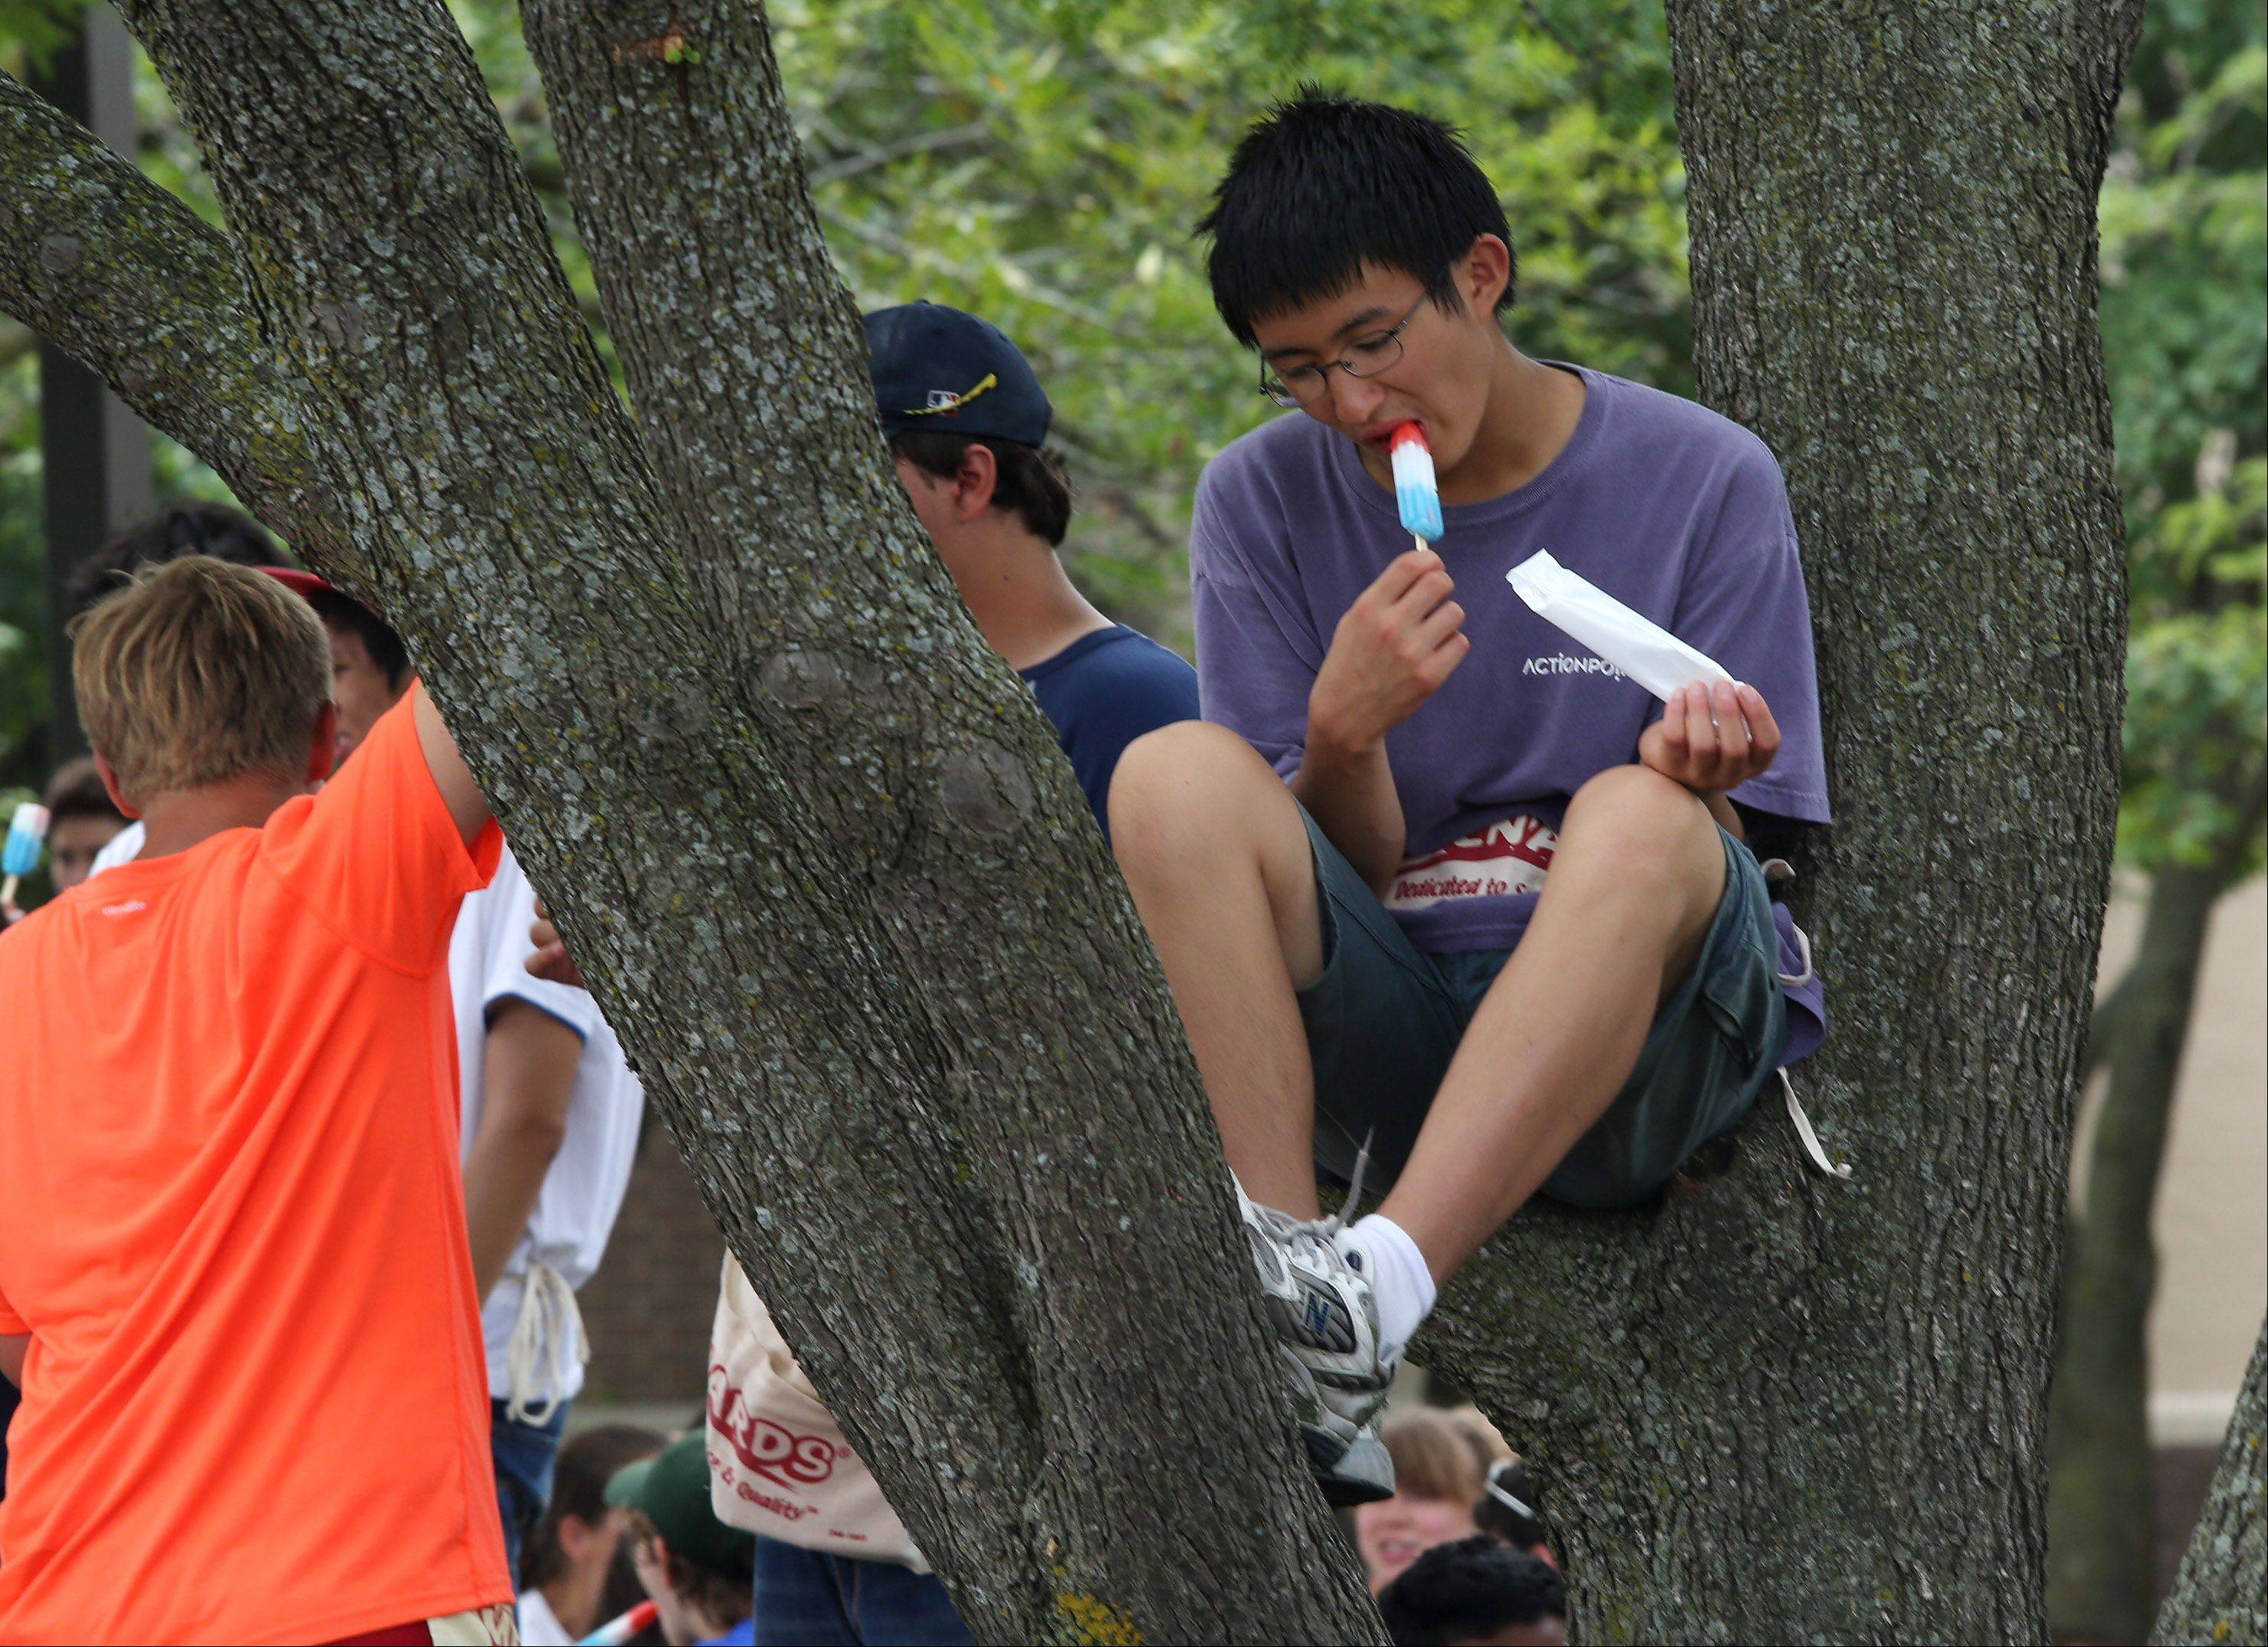 Richard Nai, 14, of Buffalo Grove, enjoys a popsicle during a break at band camp at Stevenson High School Monday. The Stevenson High School Marching Patriots Band and Color Guard Parents Organization have traditionally provided popsicles for breaks throughout band camp.